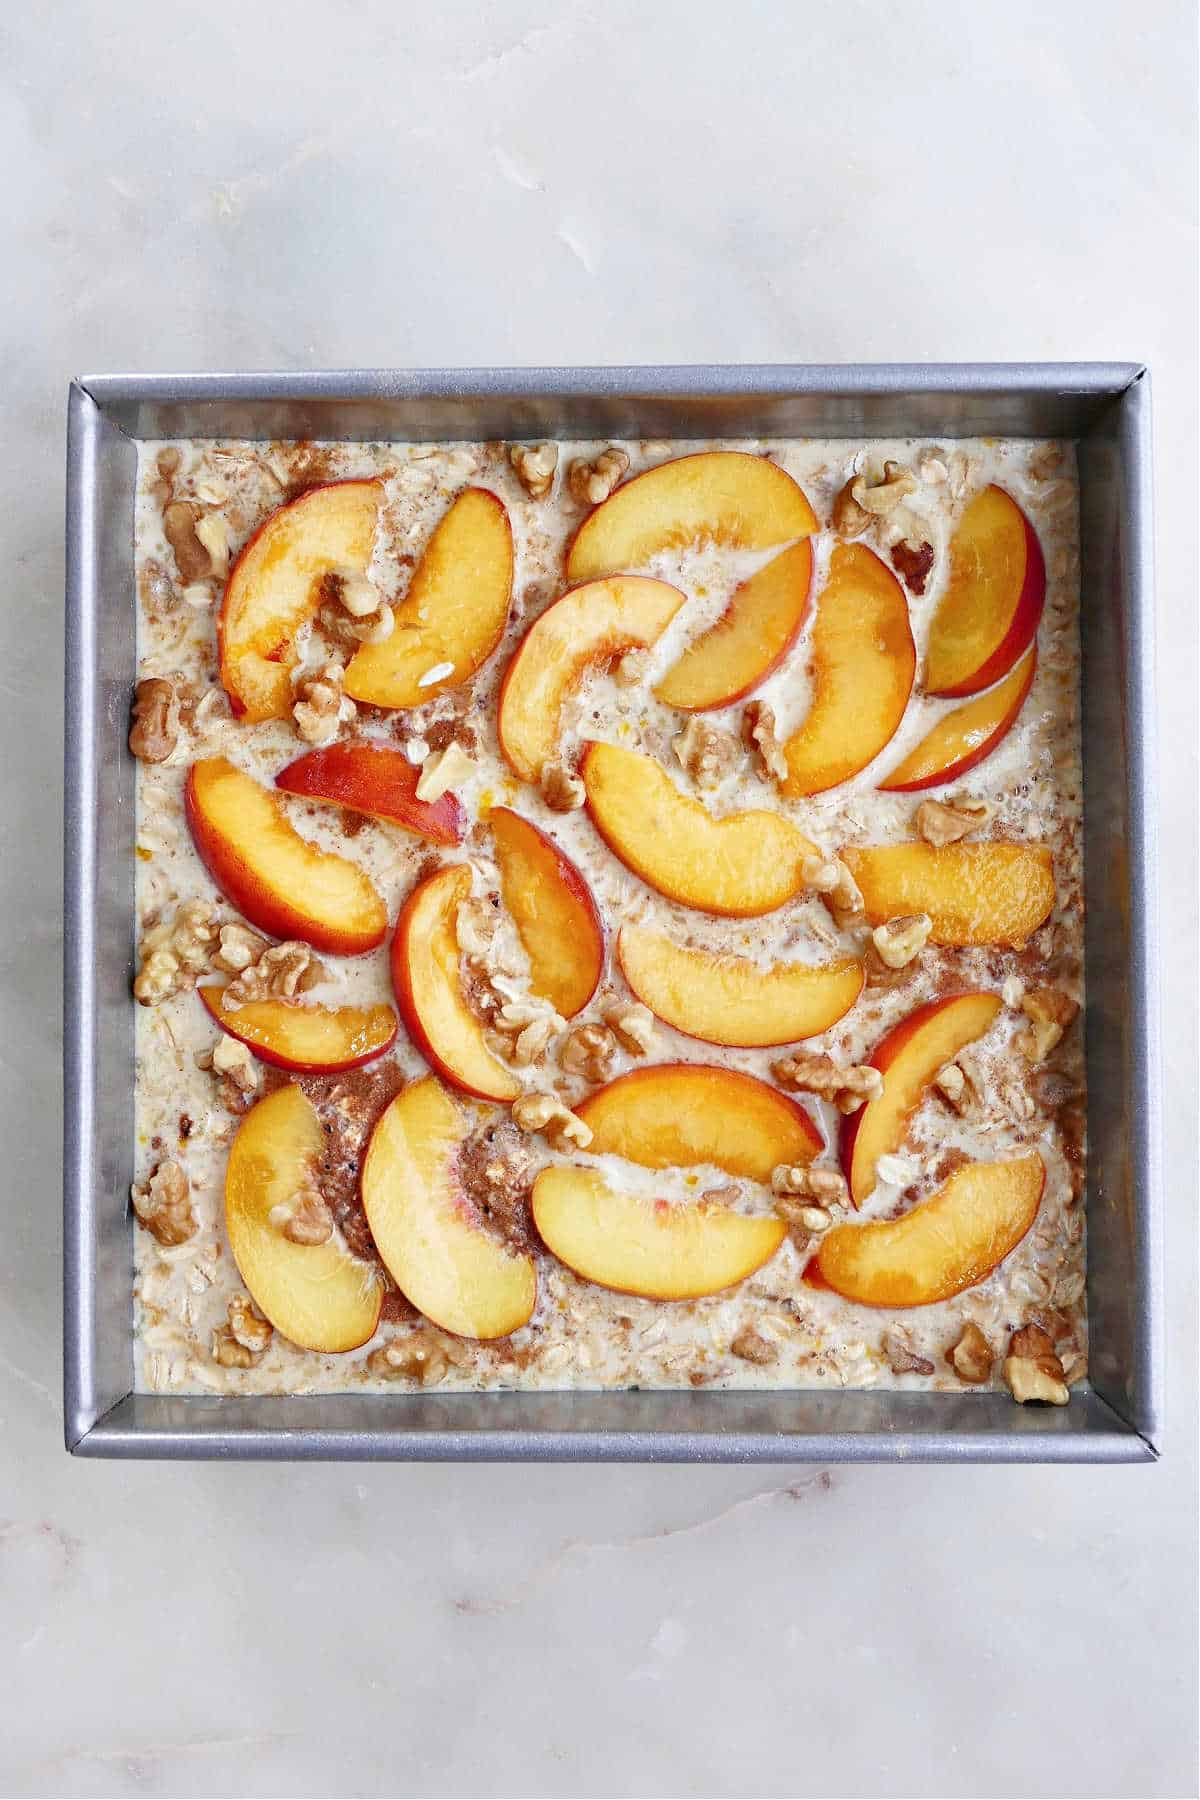 peach oatmeal before going into the oven in a baking dish on a counter